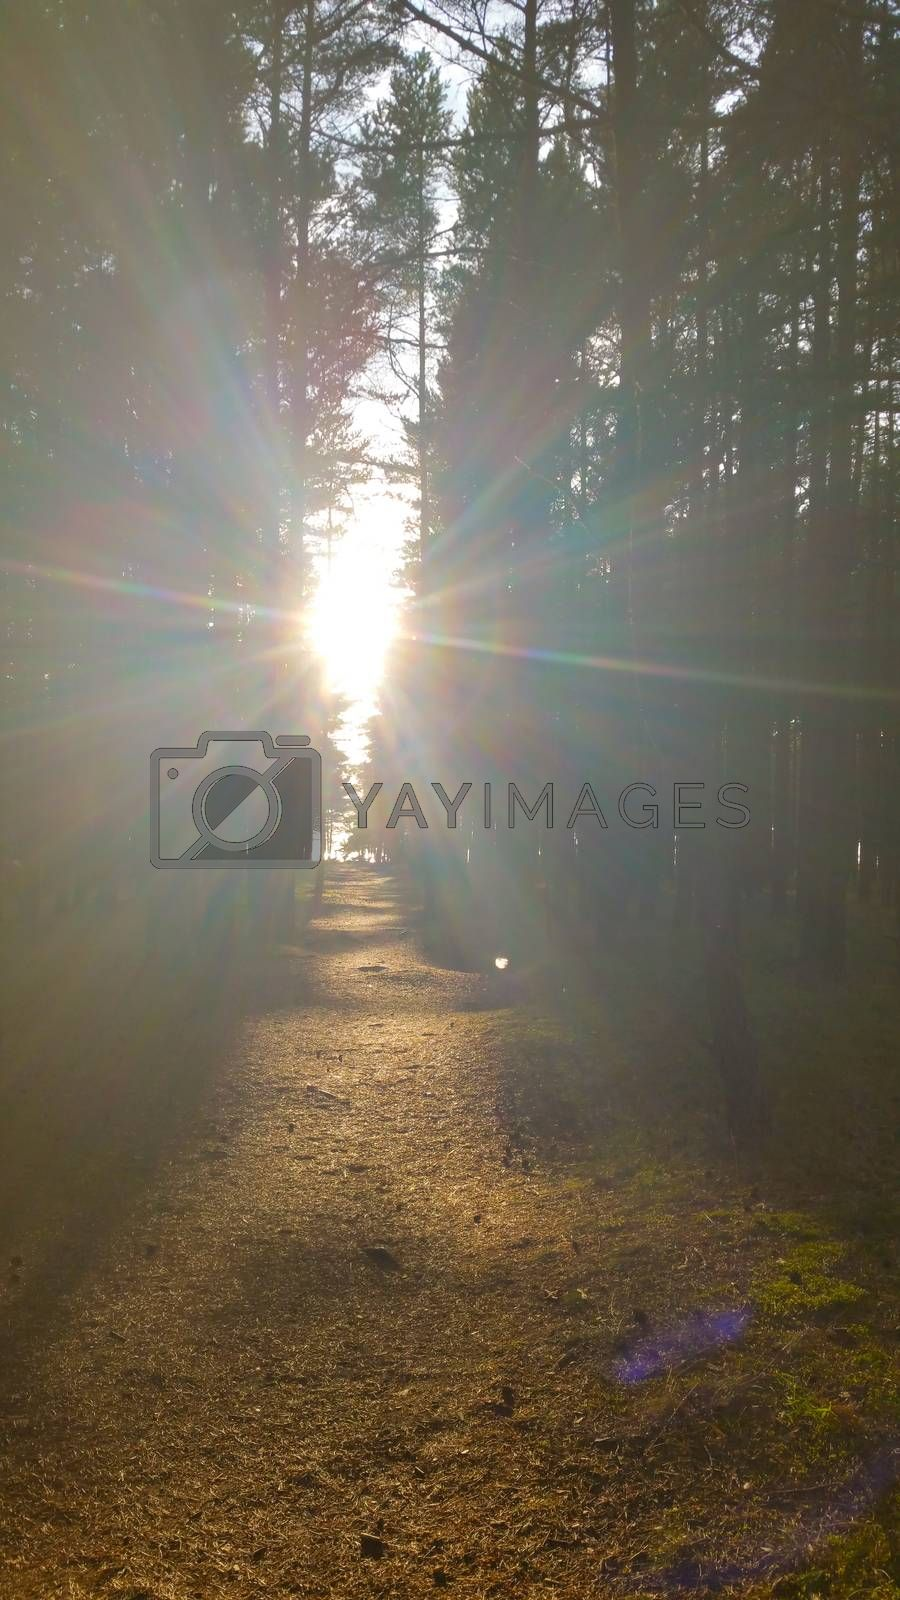 Rays of the sun on a forest path, shine directly into the eyes.